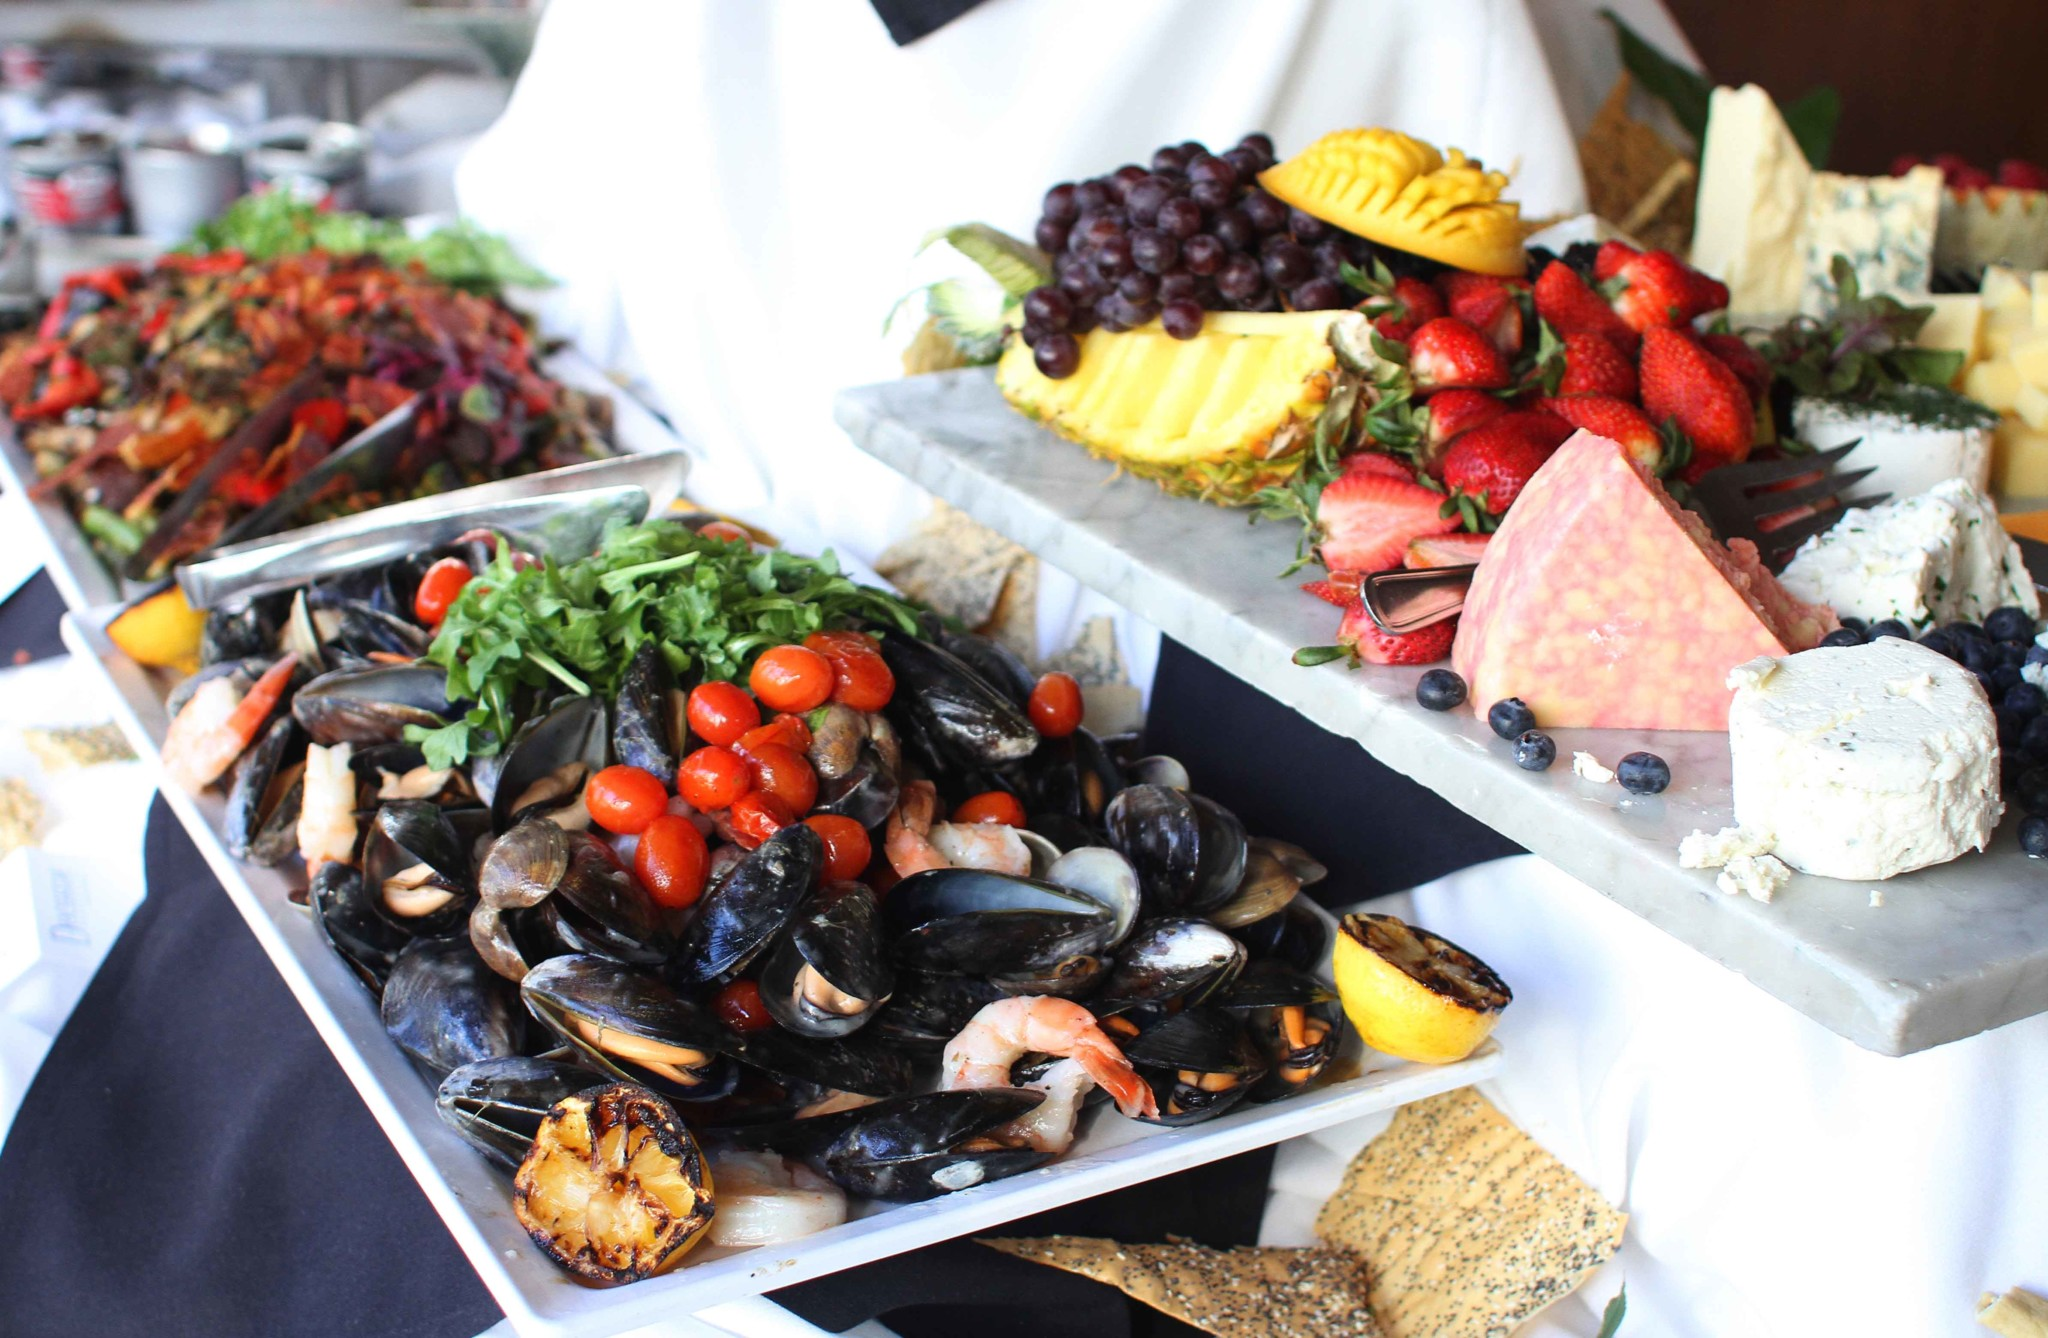 Celebrate an Easter to remember at Dockside's Market Place Brunch Buffet